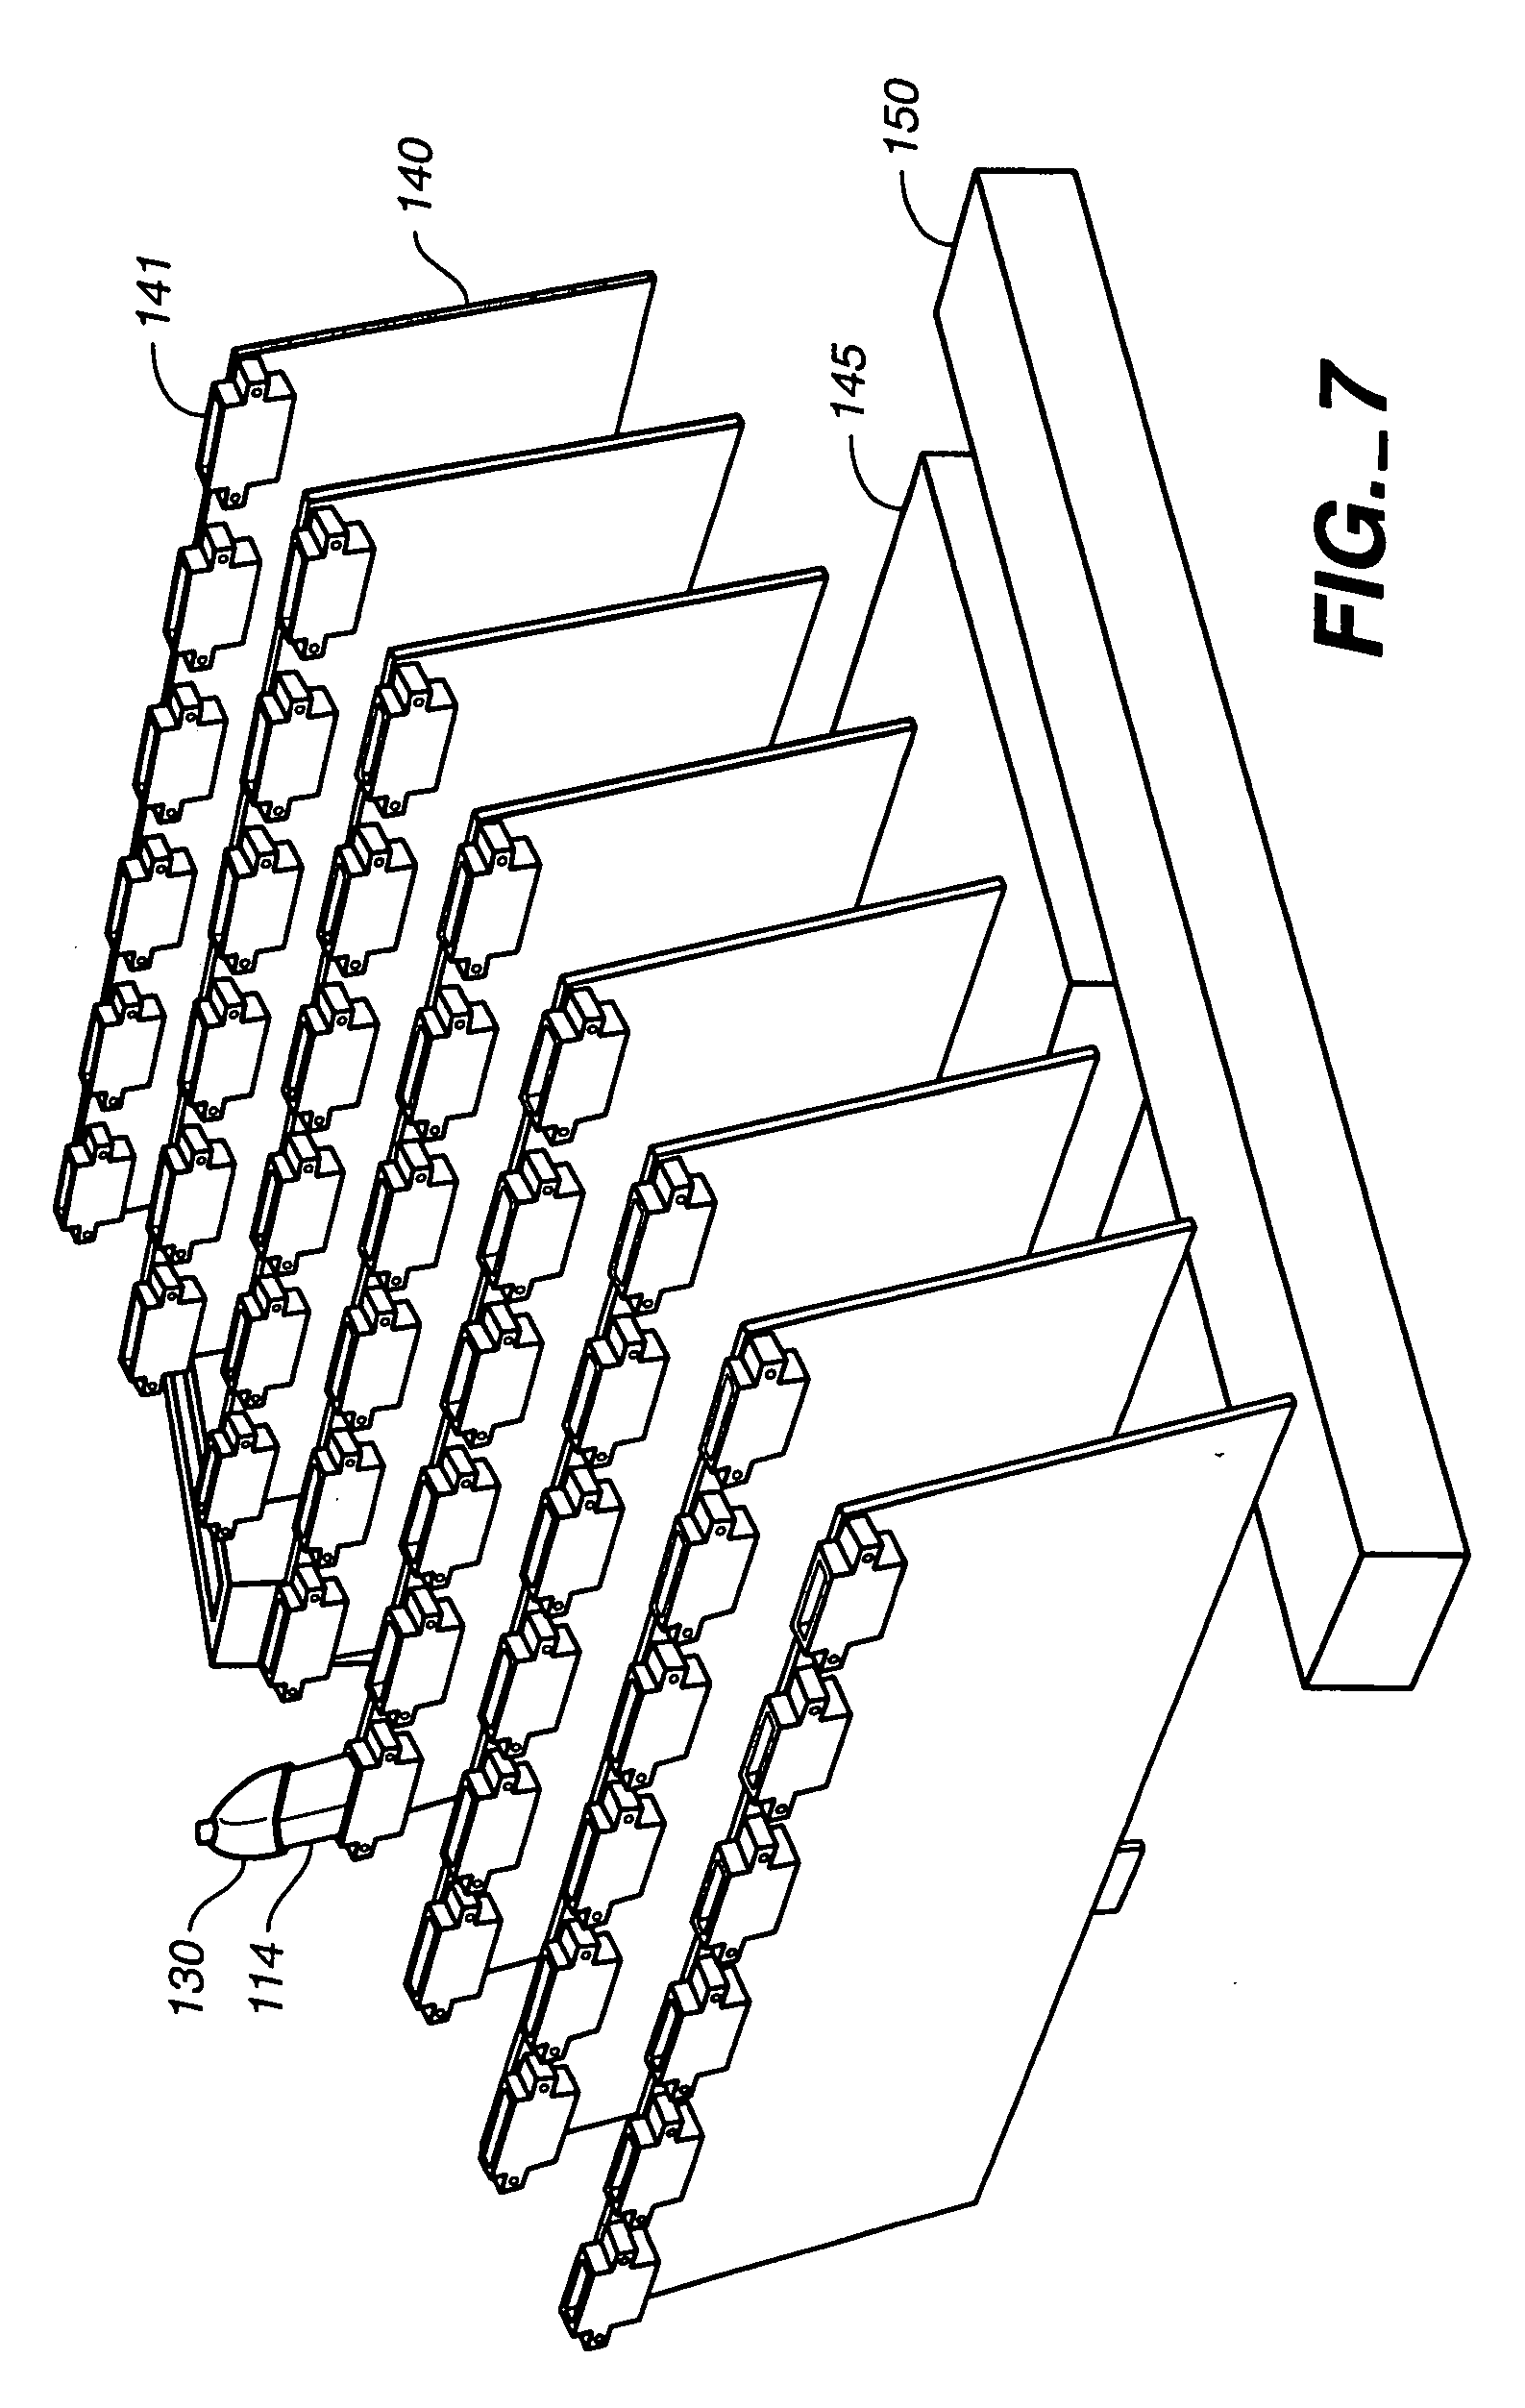 Us20090057147a1 devices and methods for biochip multiplexing patents